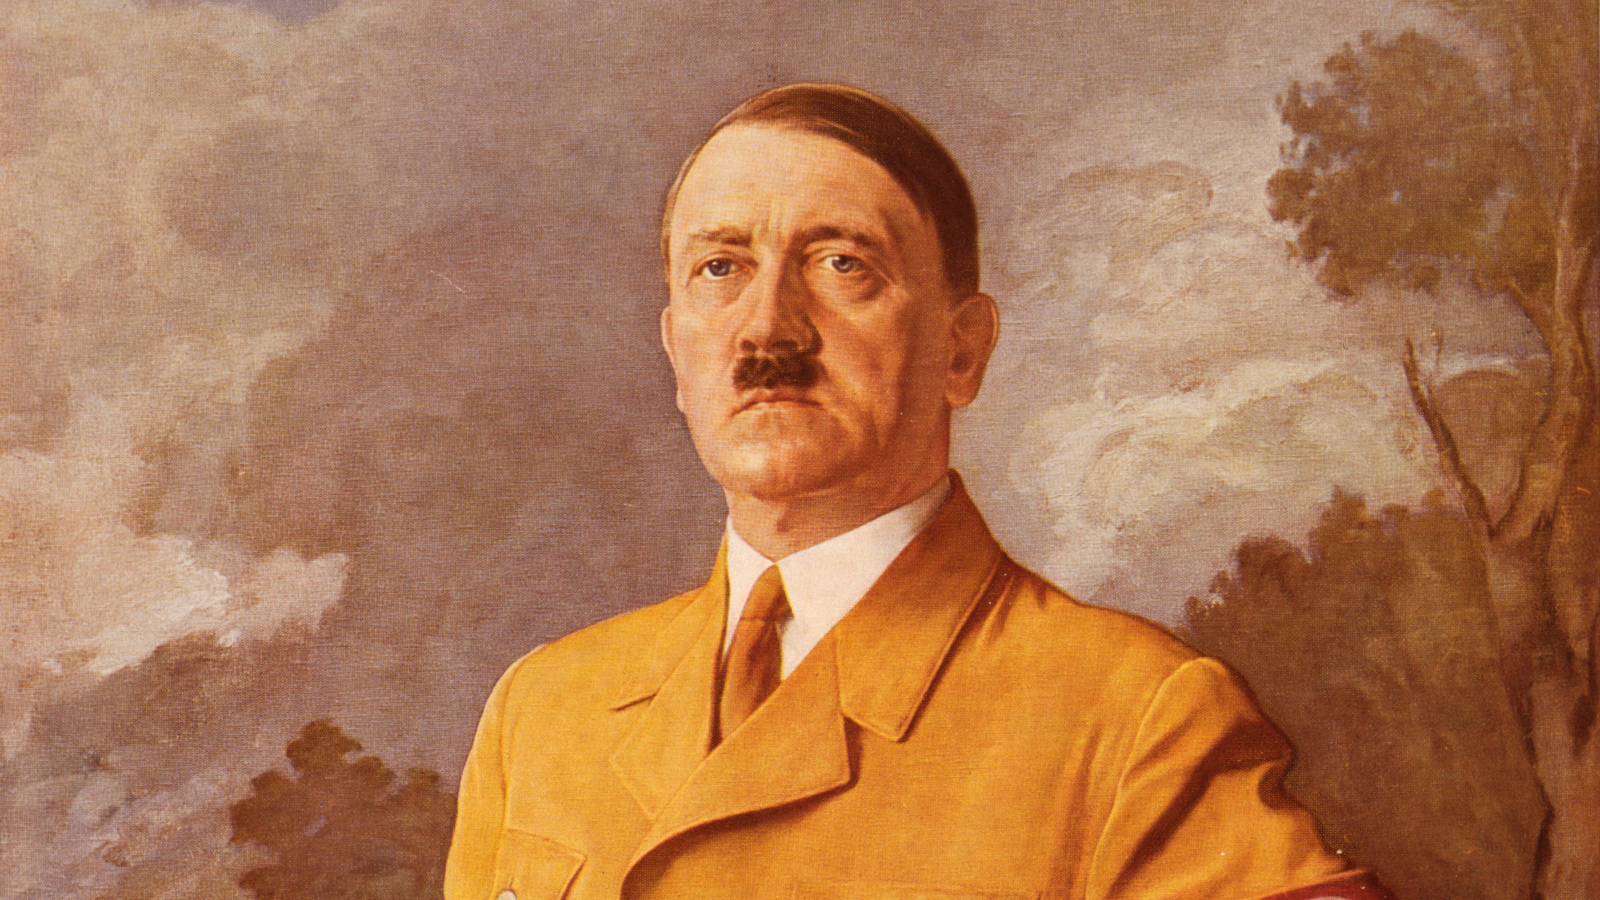 an examination of the charisma of adolf hitler —adolf hitler at the juni-klub, spring 1922, as quoted in jean pierre  60 years,  the first one to read is still alan bullock's hitler: a study in tyranny  words in  small-circulation magazines and raw charisma in the streets.